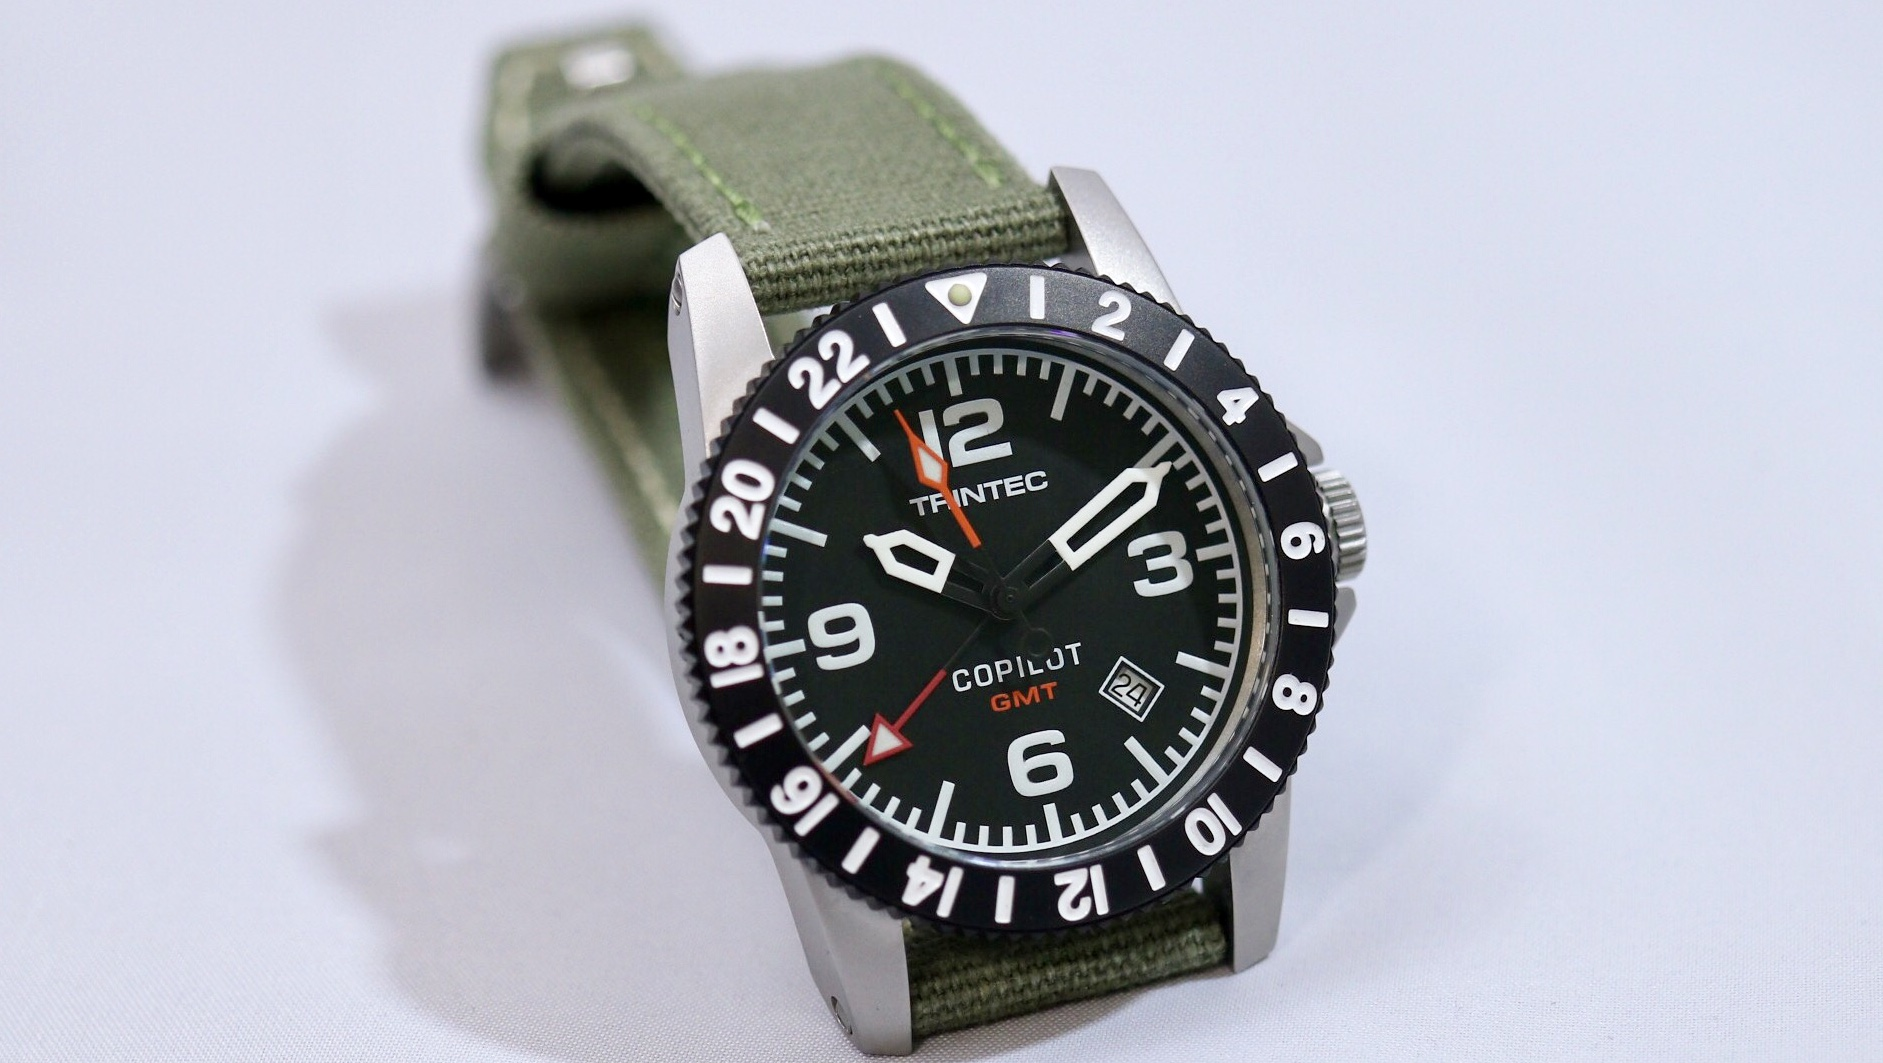 Trintec Copilot GMT And Chronograph